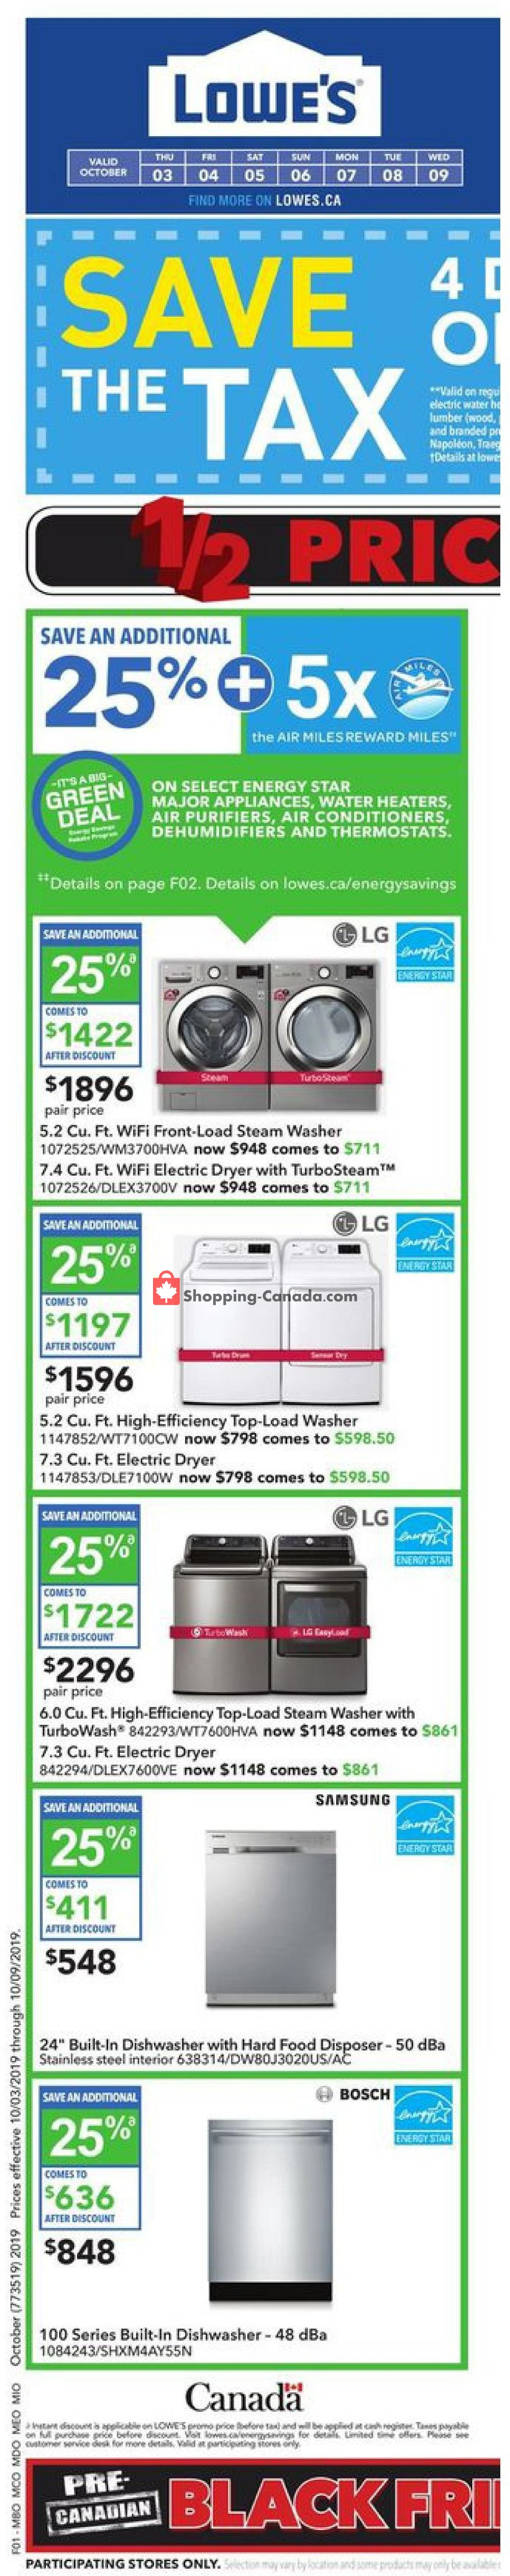 Flyer Lowe's Canada - from Thursday October 3, 2019 to Wednesday October 9, 2019